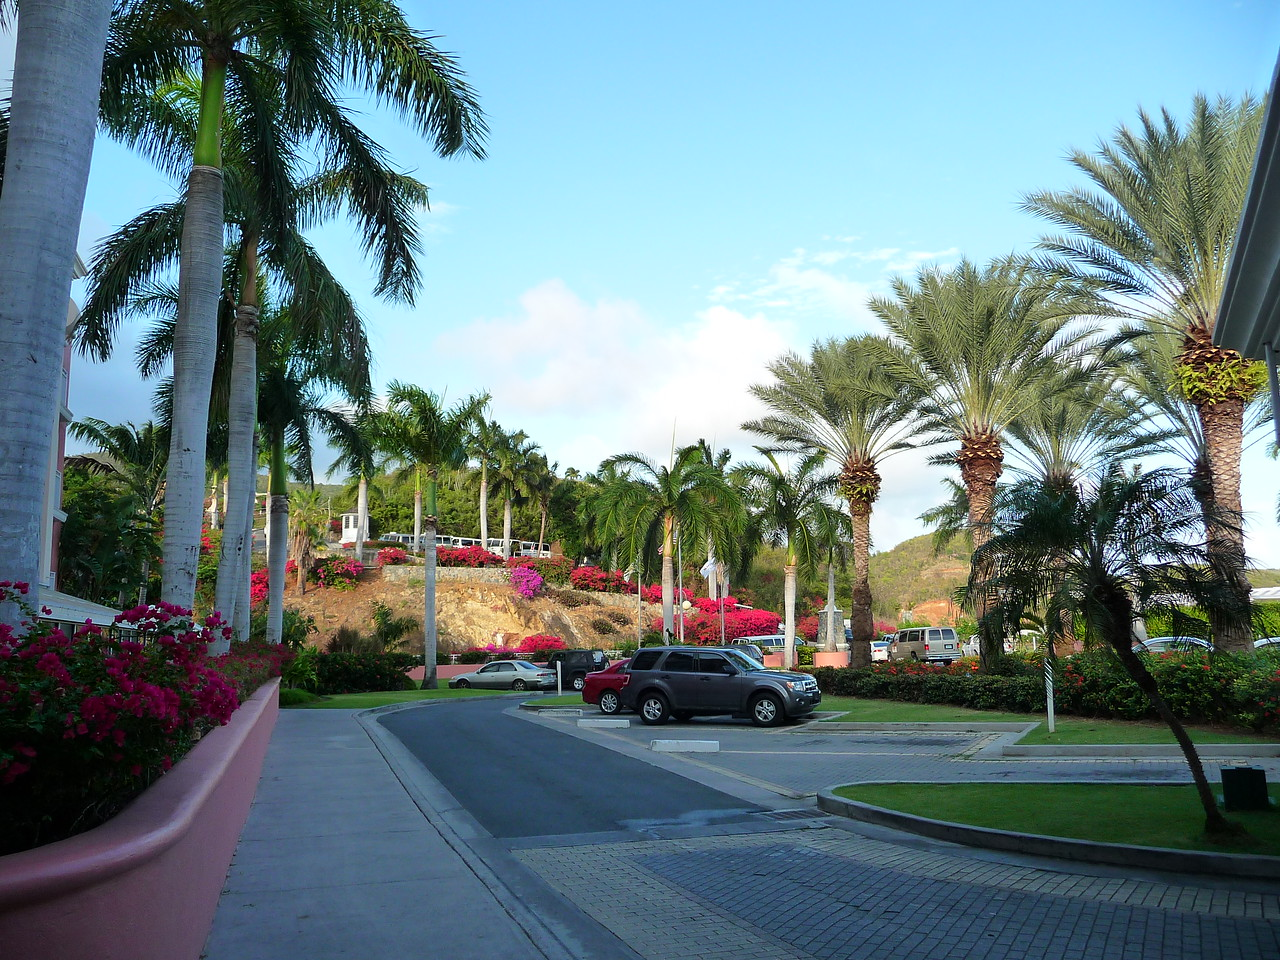 View from the front lobby of the Frenchman's Reef Resort.